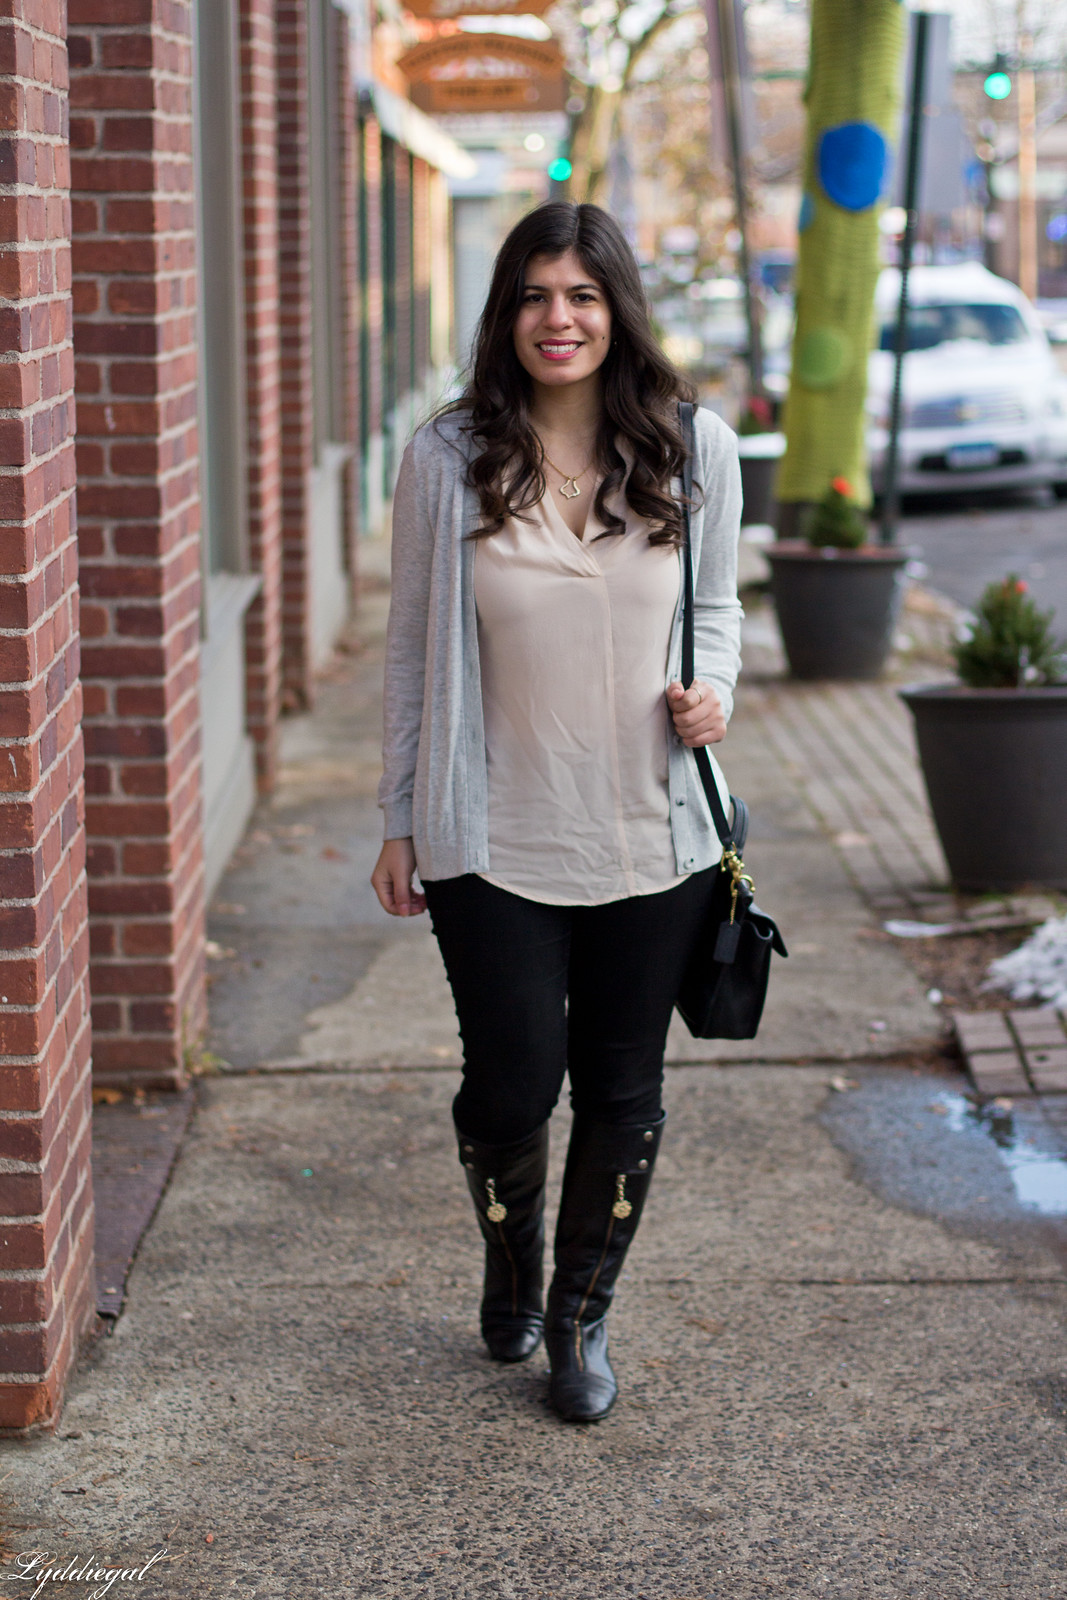 blush silk top, black jeans, boots, grey cardigan-11.jpg